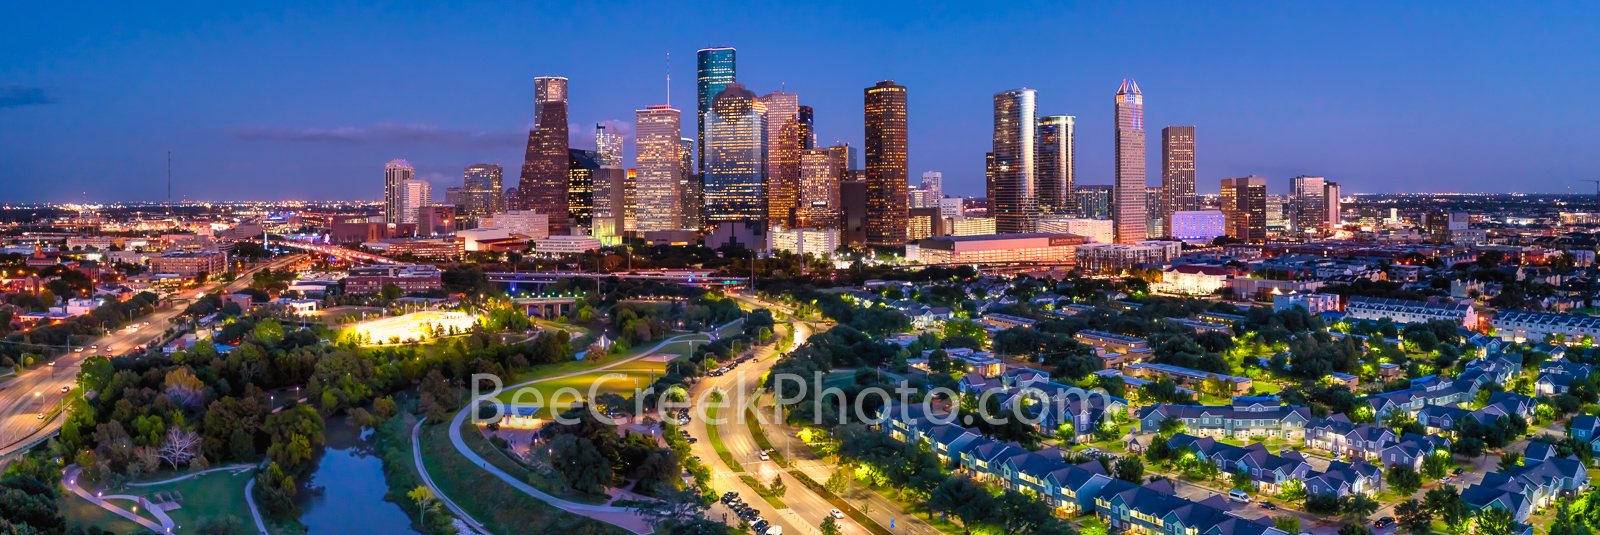 Houston skyline at twilight, Houston skyline, skyline, twilight, Houston skyline pictures, Houston skyline images, pictures of houston, aerial, panorama, pano, houston cityscape, city, cityscape, down, photo